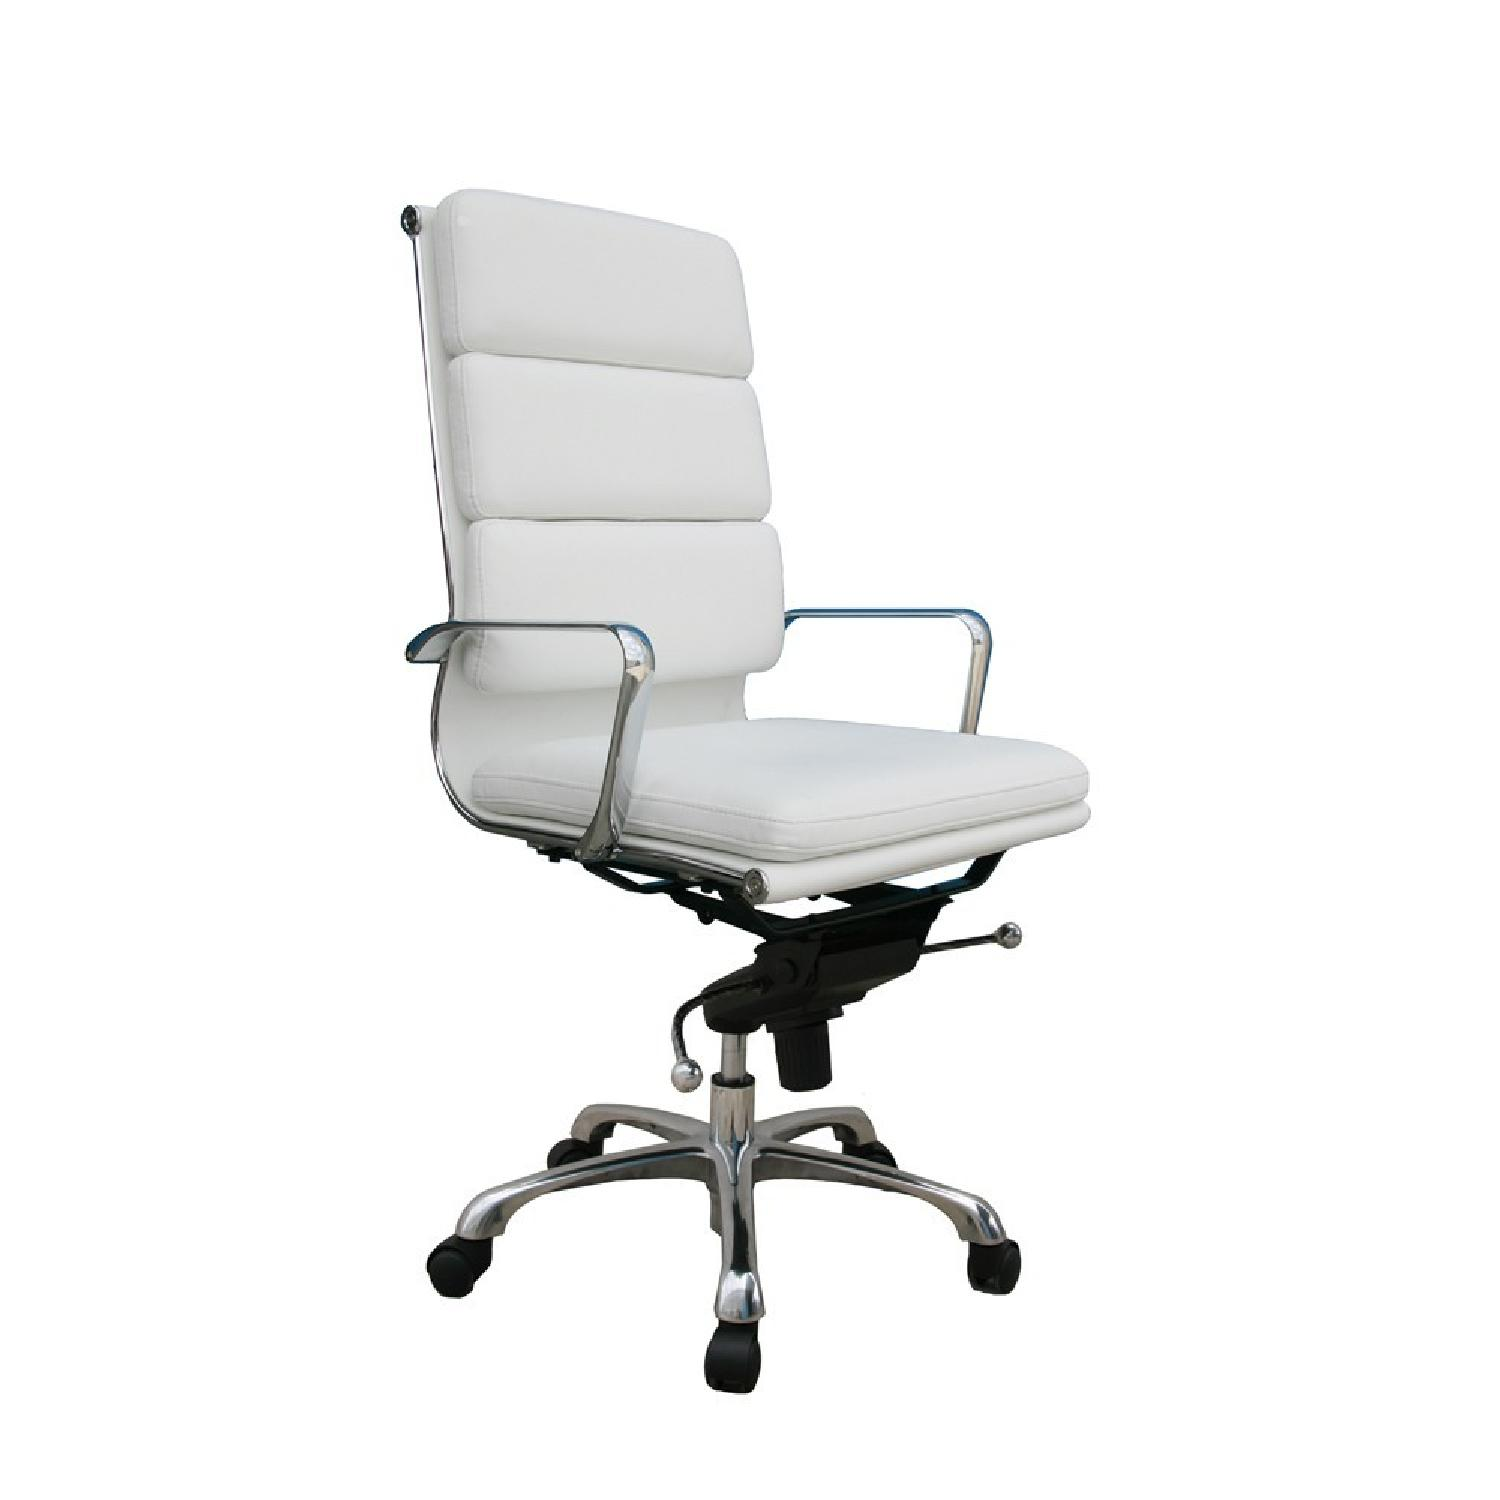 office chairs white leather folding camping with canopy high back chair aptdeco